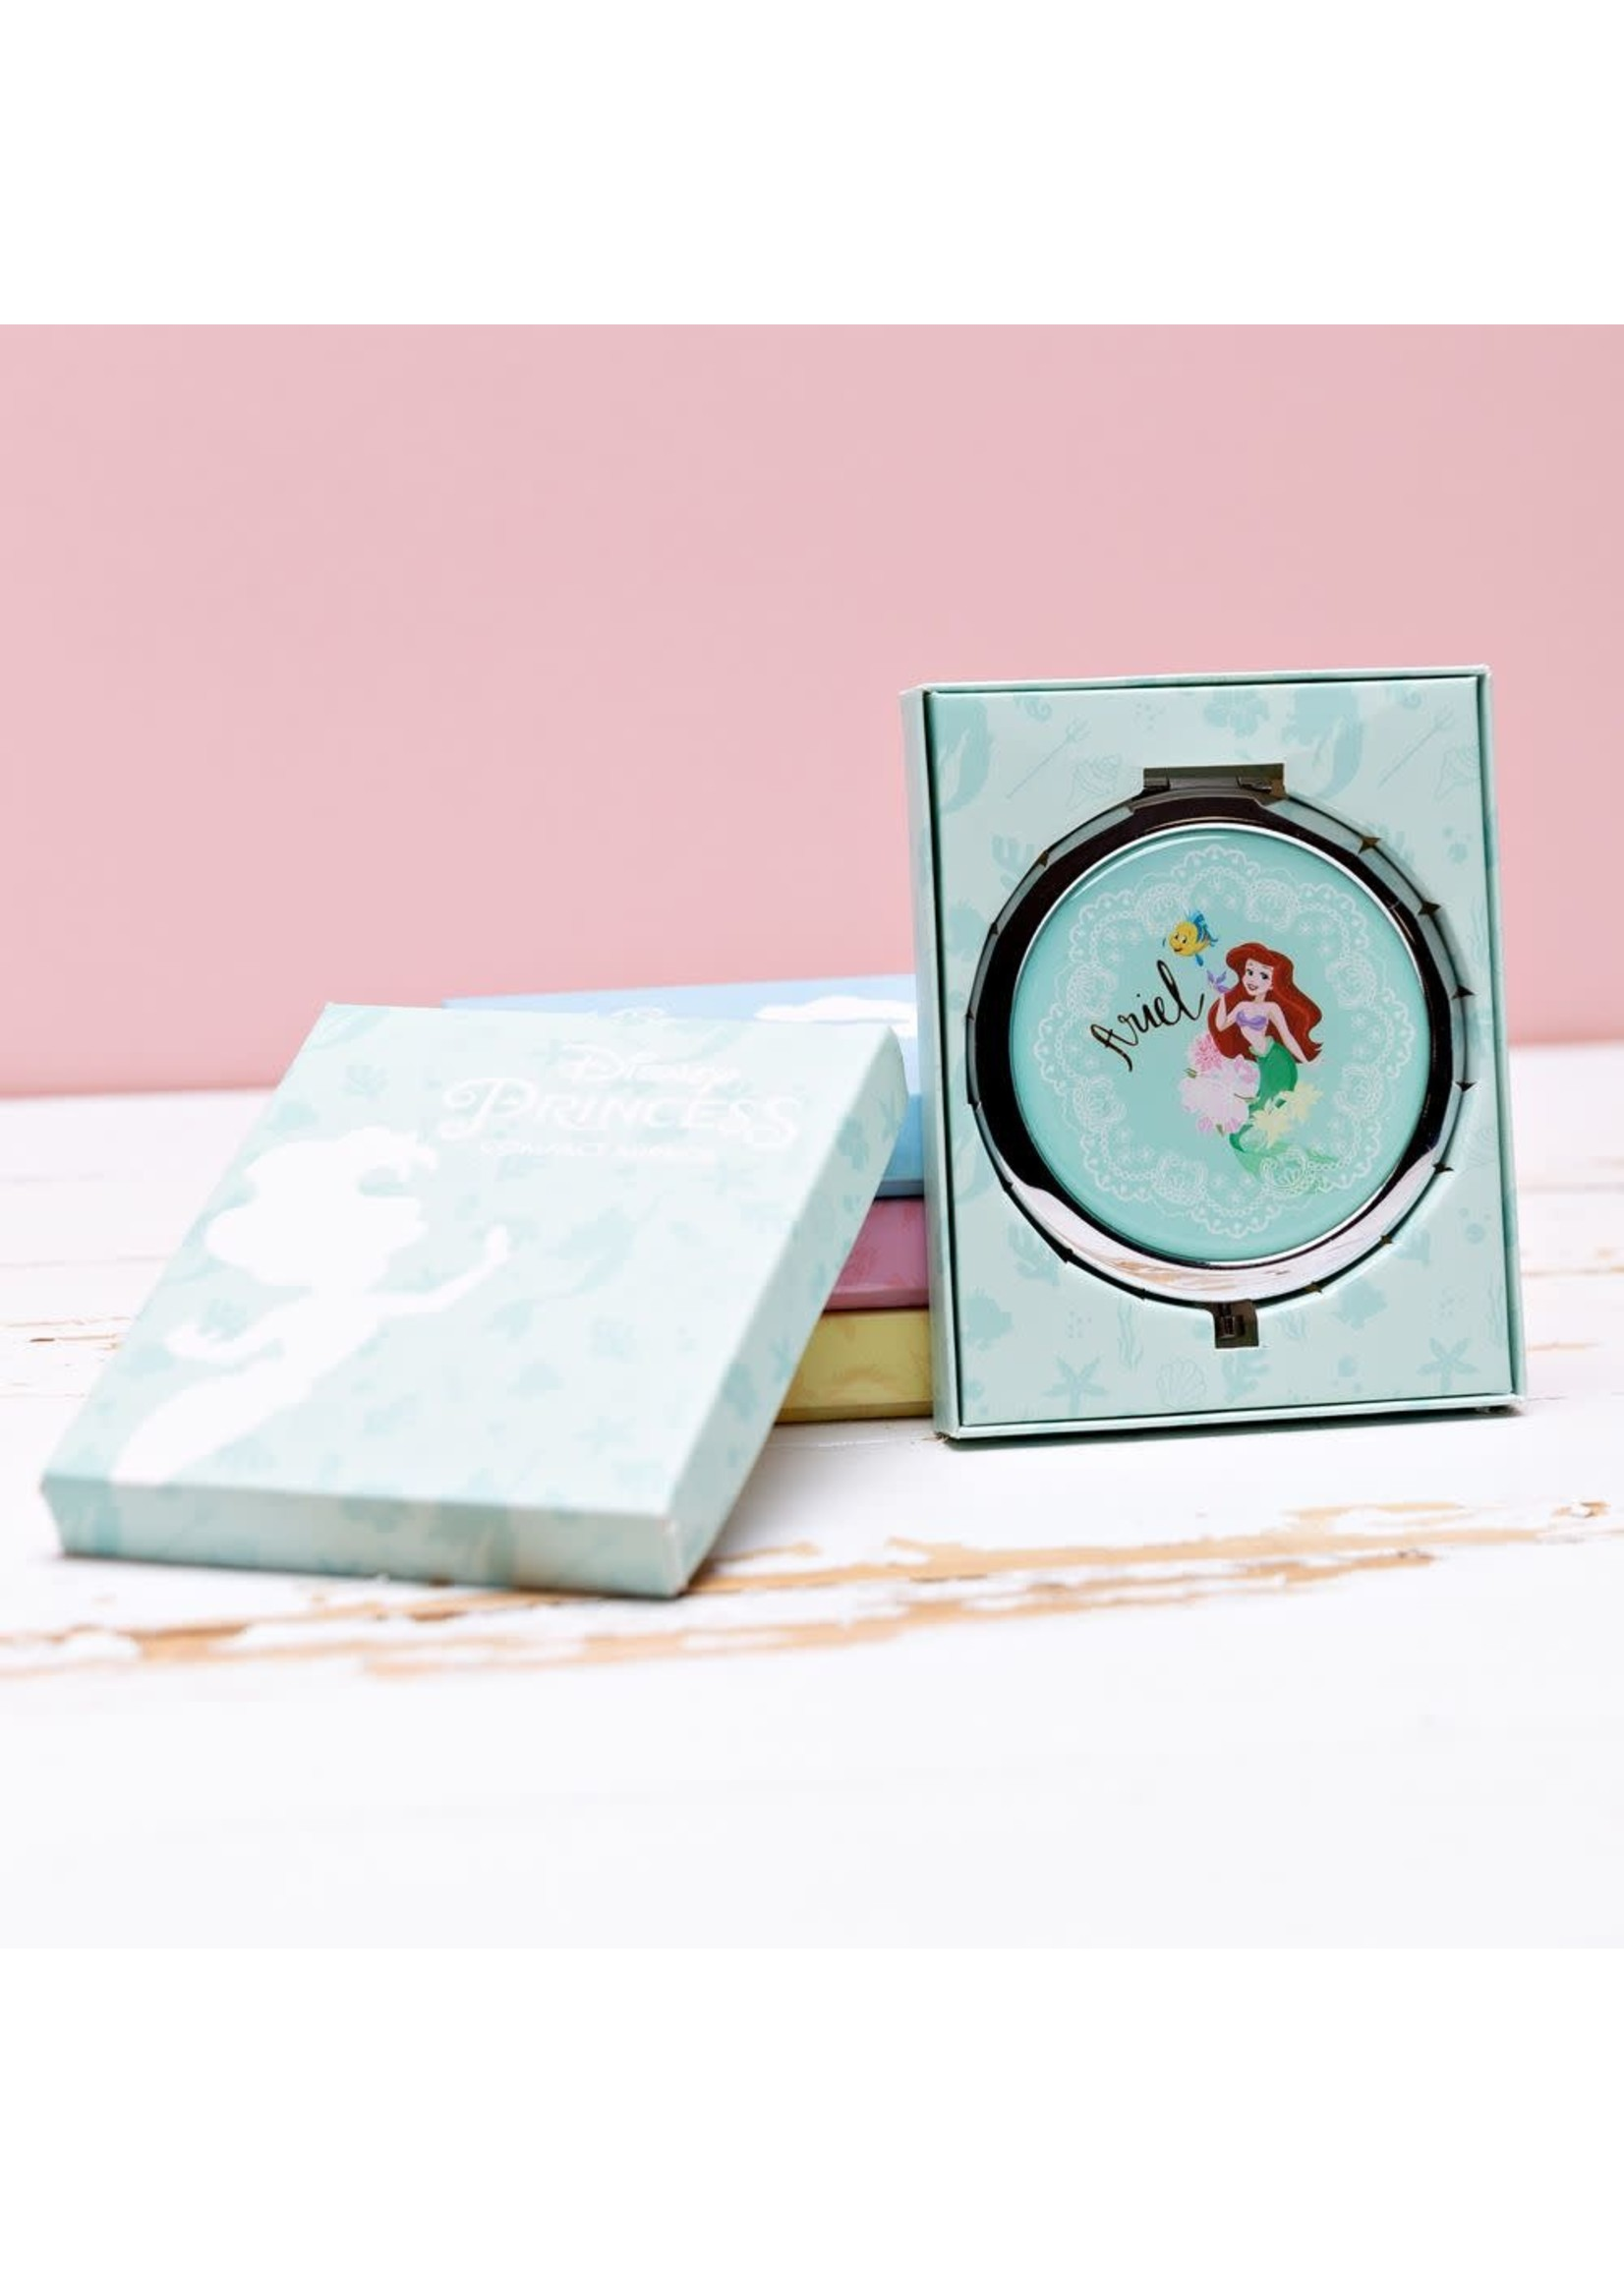 DISNEY THE LITTLE MERMAID GOLD FOIL EMBOSSED COMPACT MIRROR